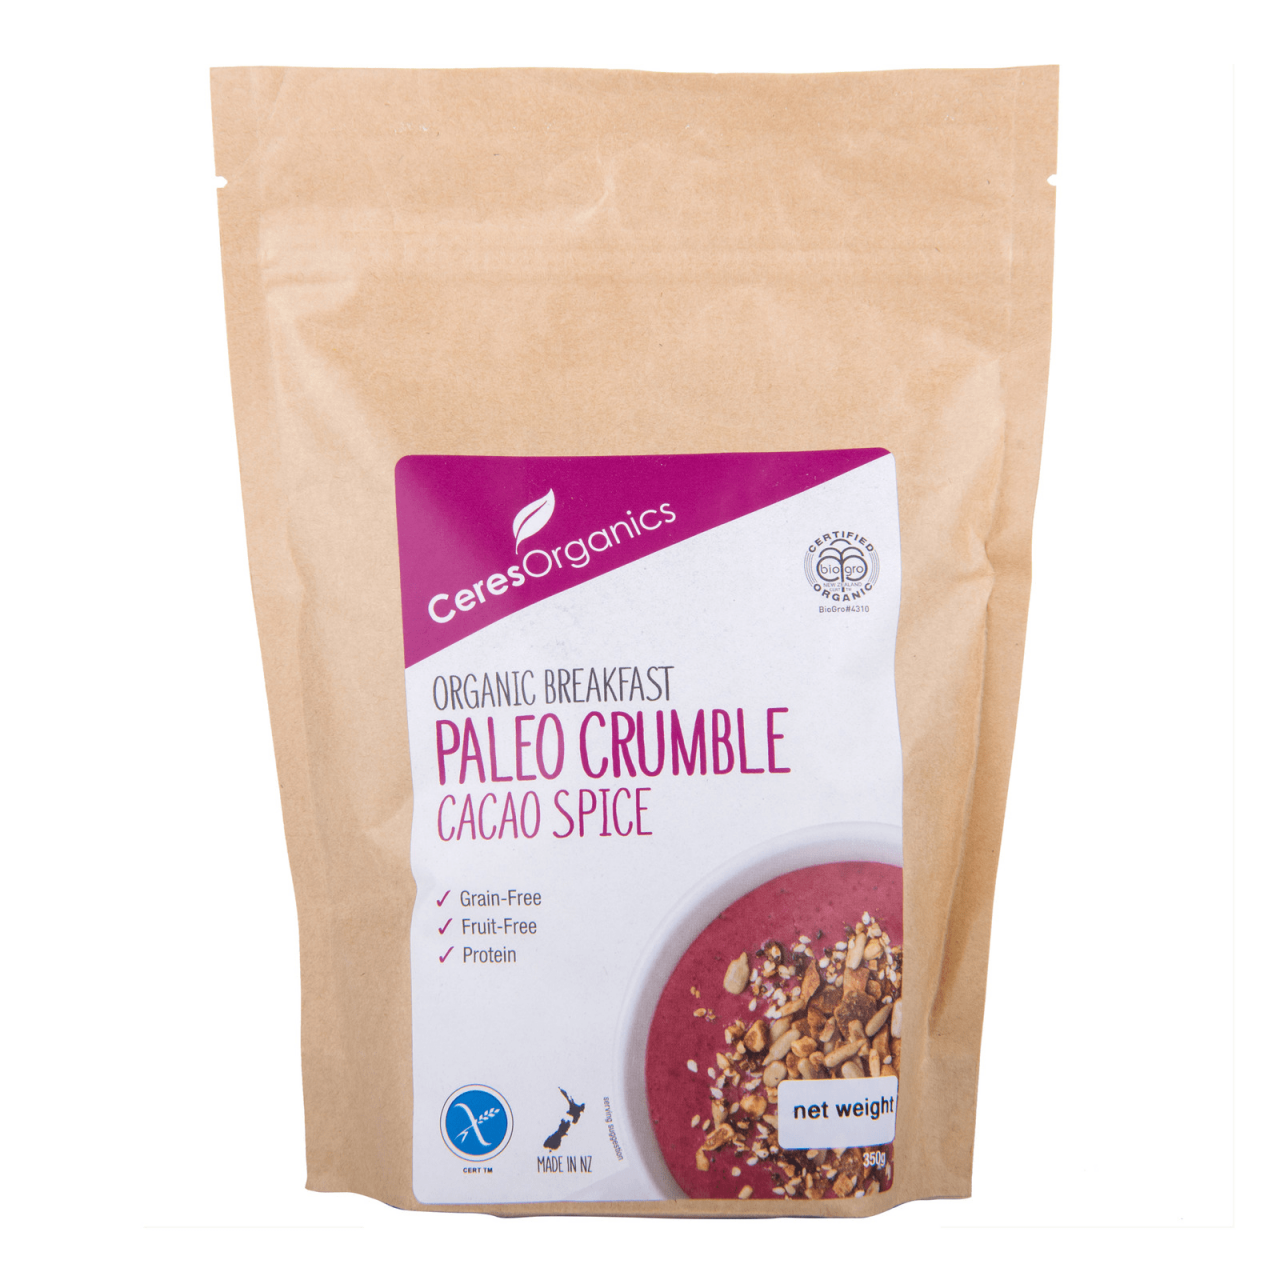 Fairprice On Paleco Crumble Cacao spice